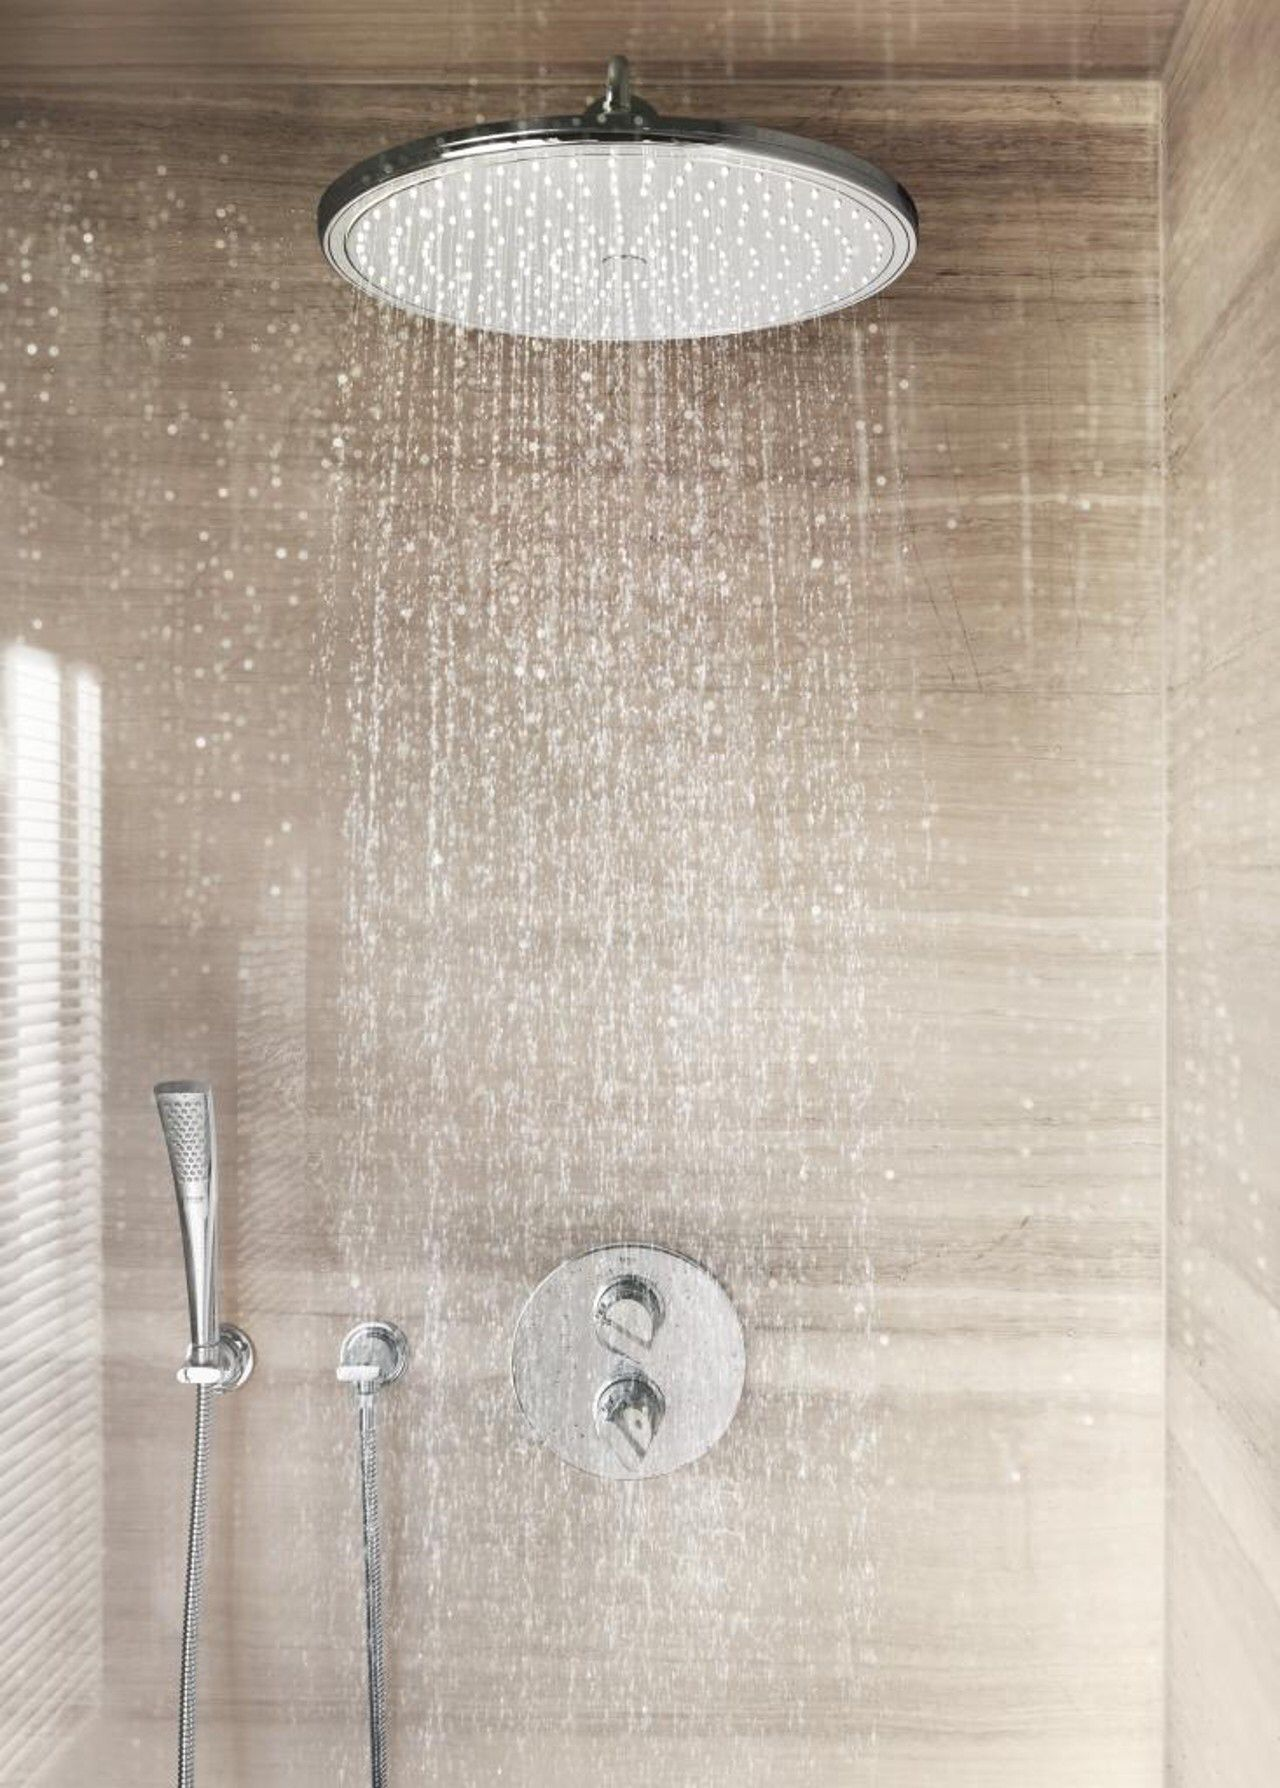 GROHE Ondus | Now that is a shower | Pinterest - GROHE Ondus